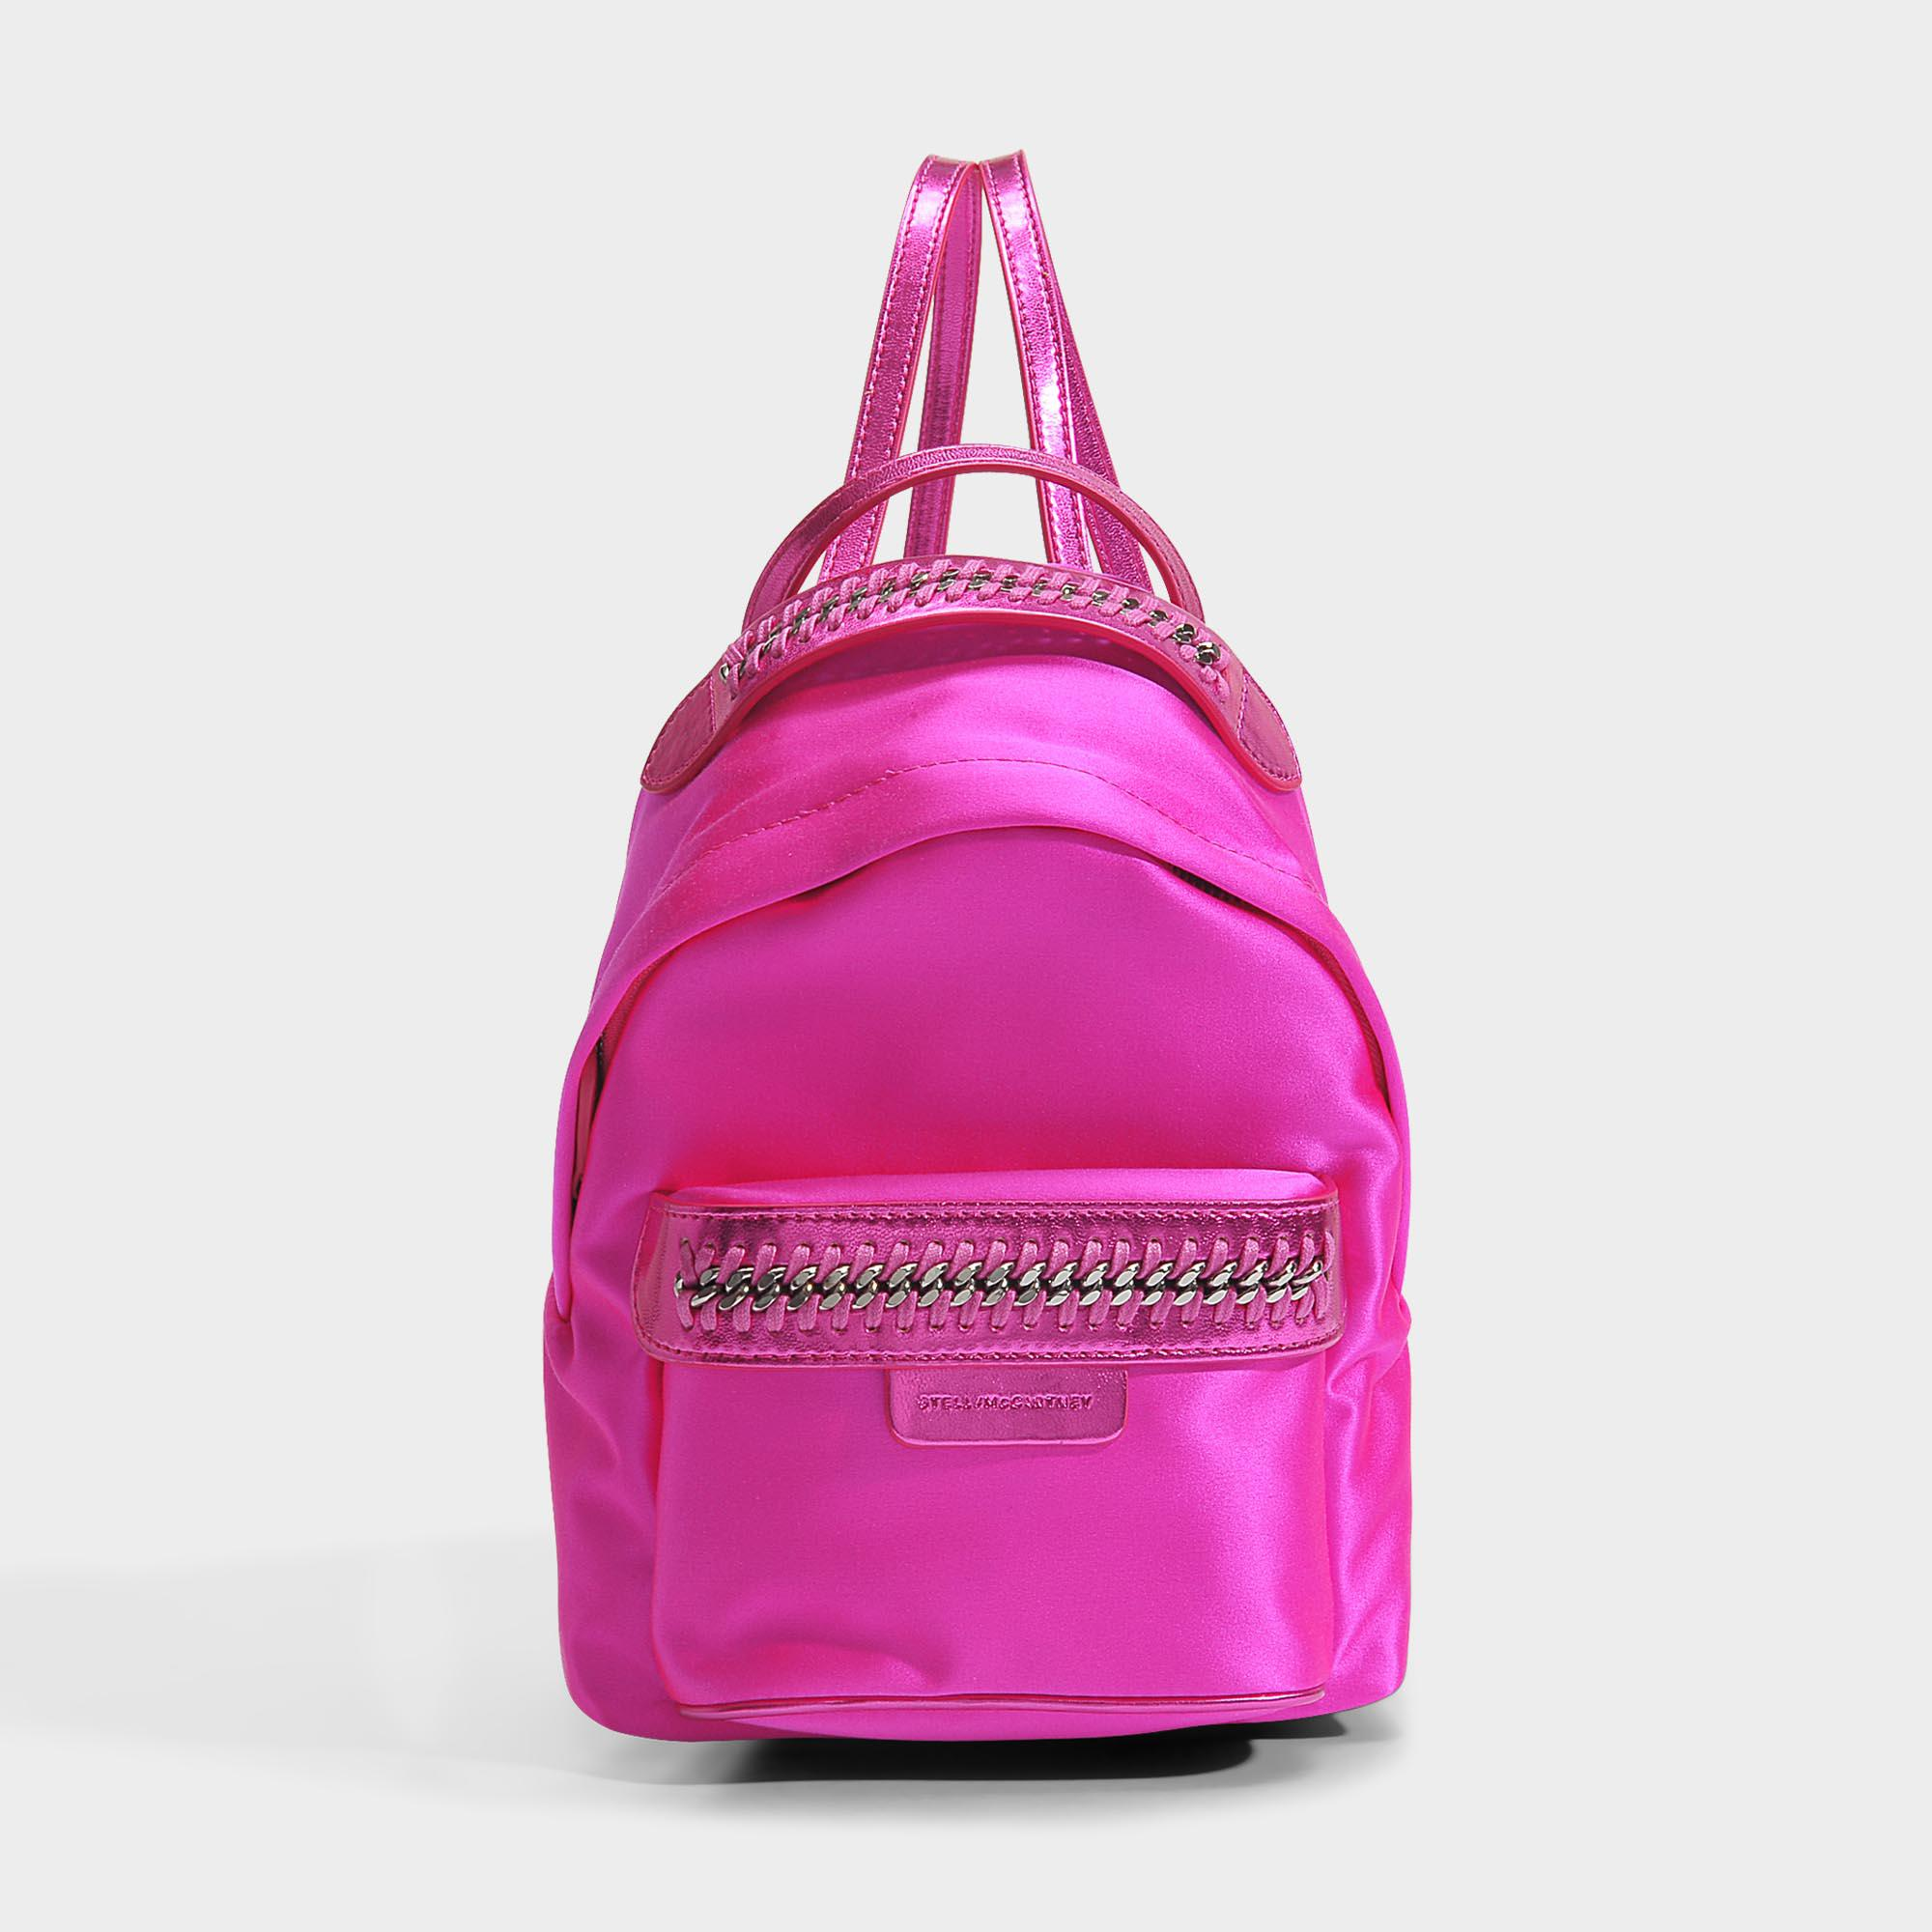 Satin Falabella Go Mini Backpack in Bright Fuchsia Eco Fabric Stella McCartney dqwCrgNb5